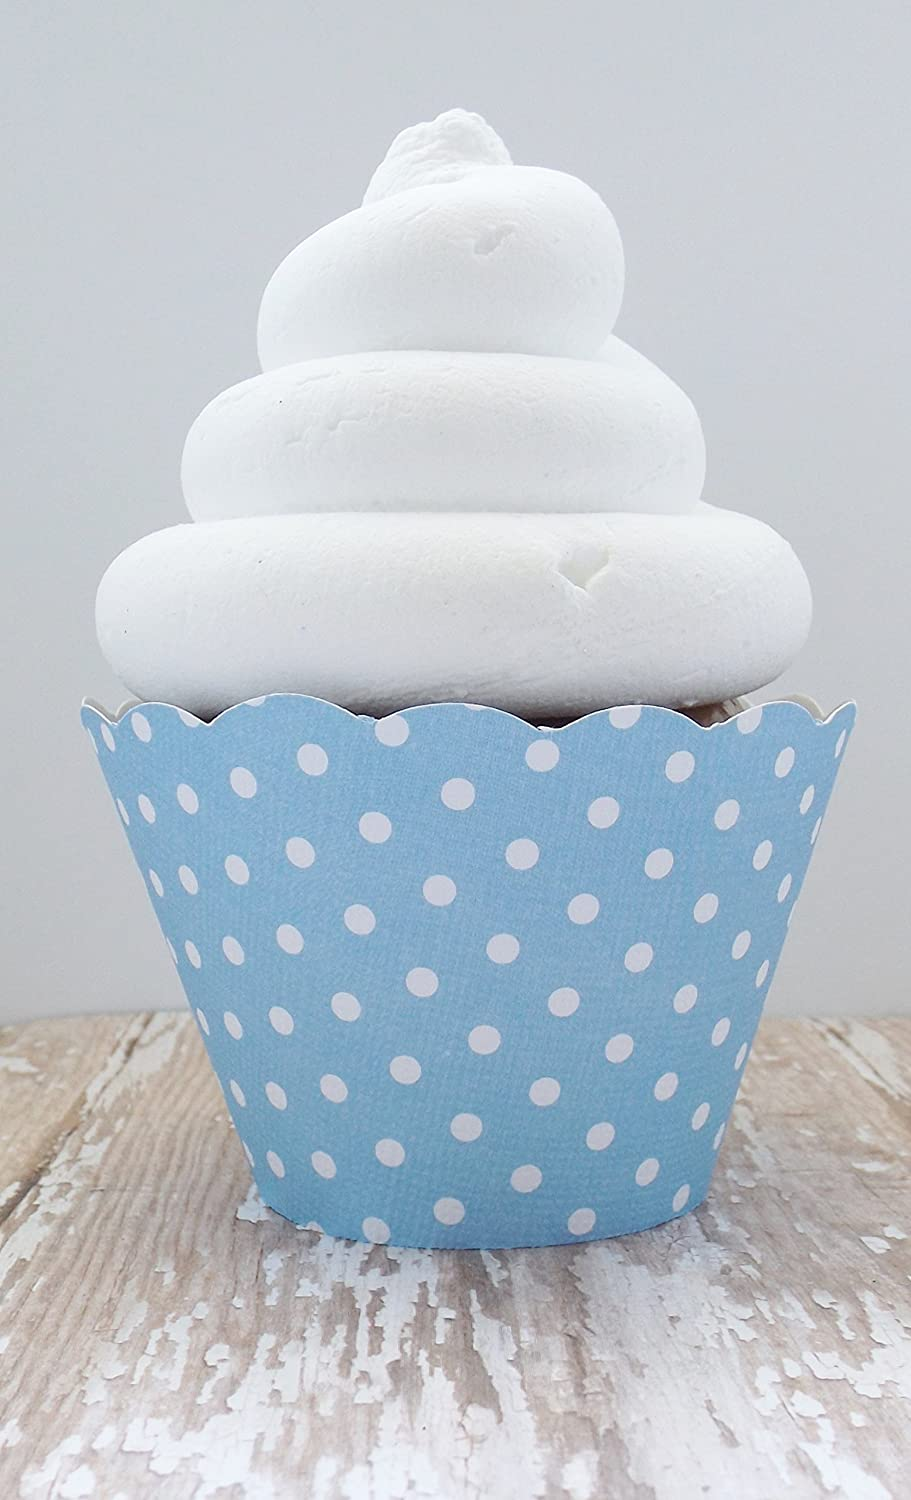 Light Blue and White Polka Dot Cupcake Wrappers - Standard and Mini Sized Holders - Set of 12